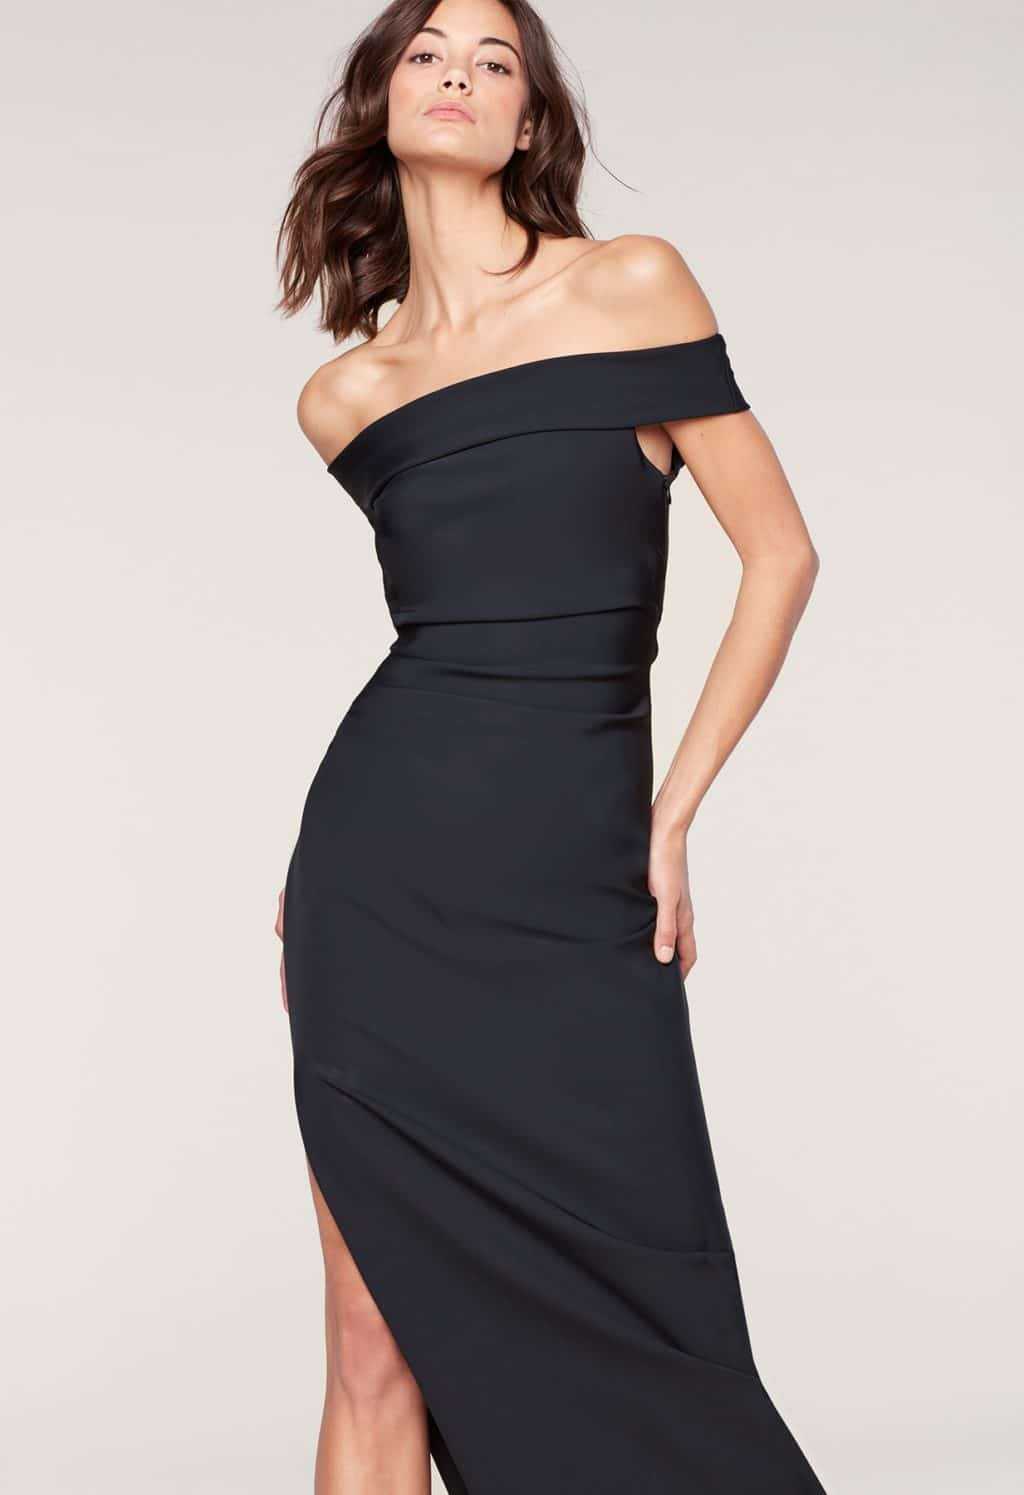 MILLY Ally Black Gown - We Select Dresses